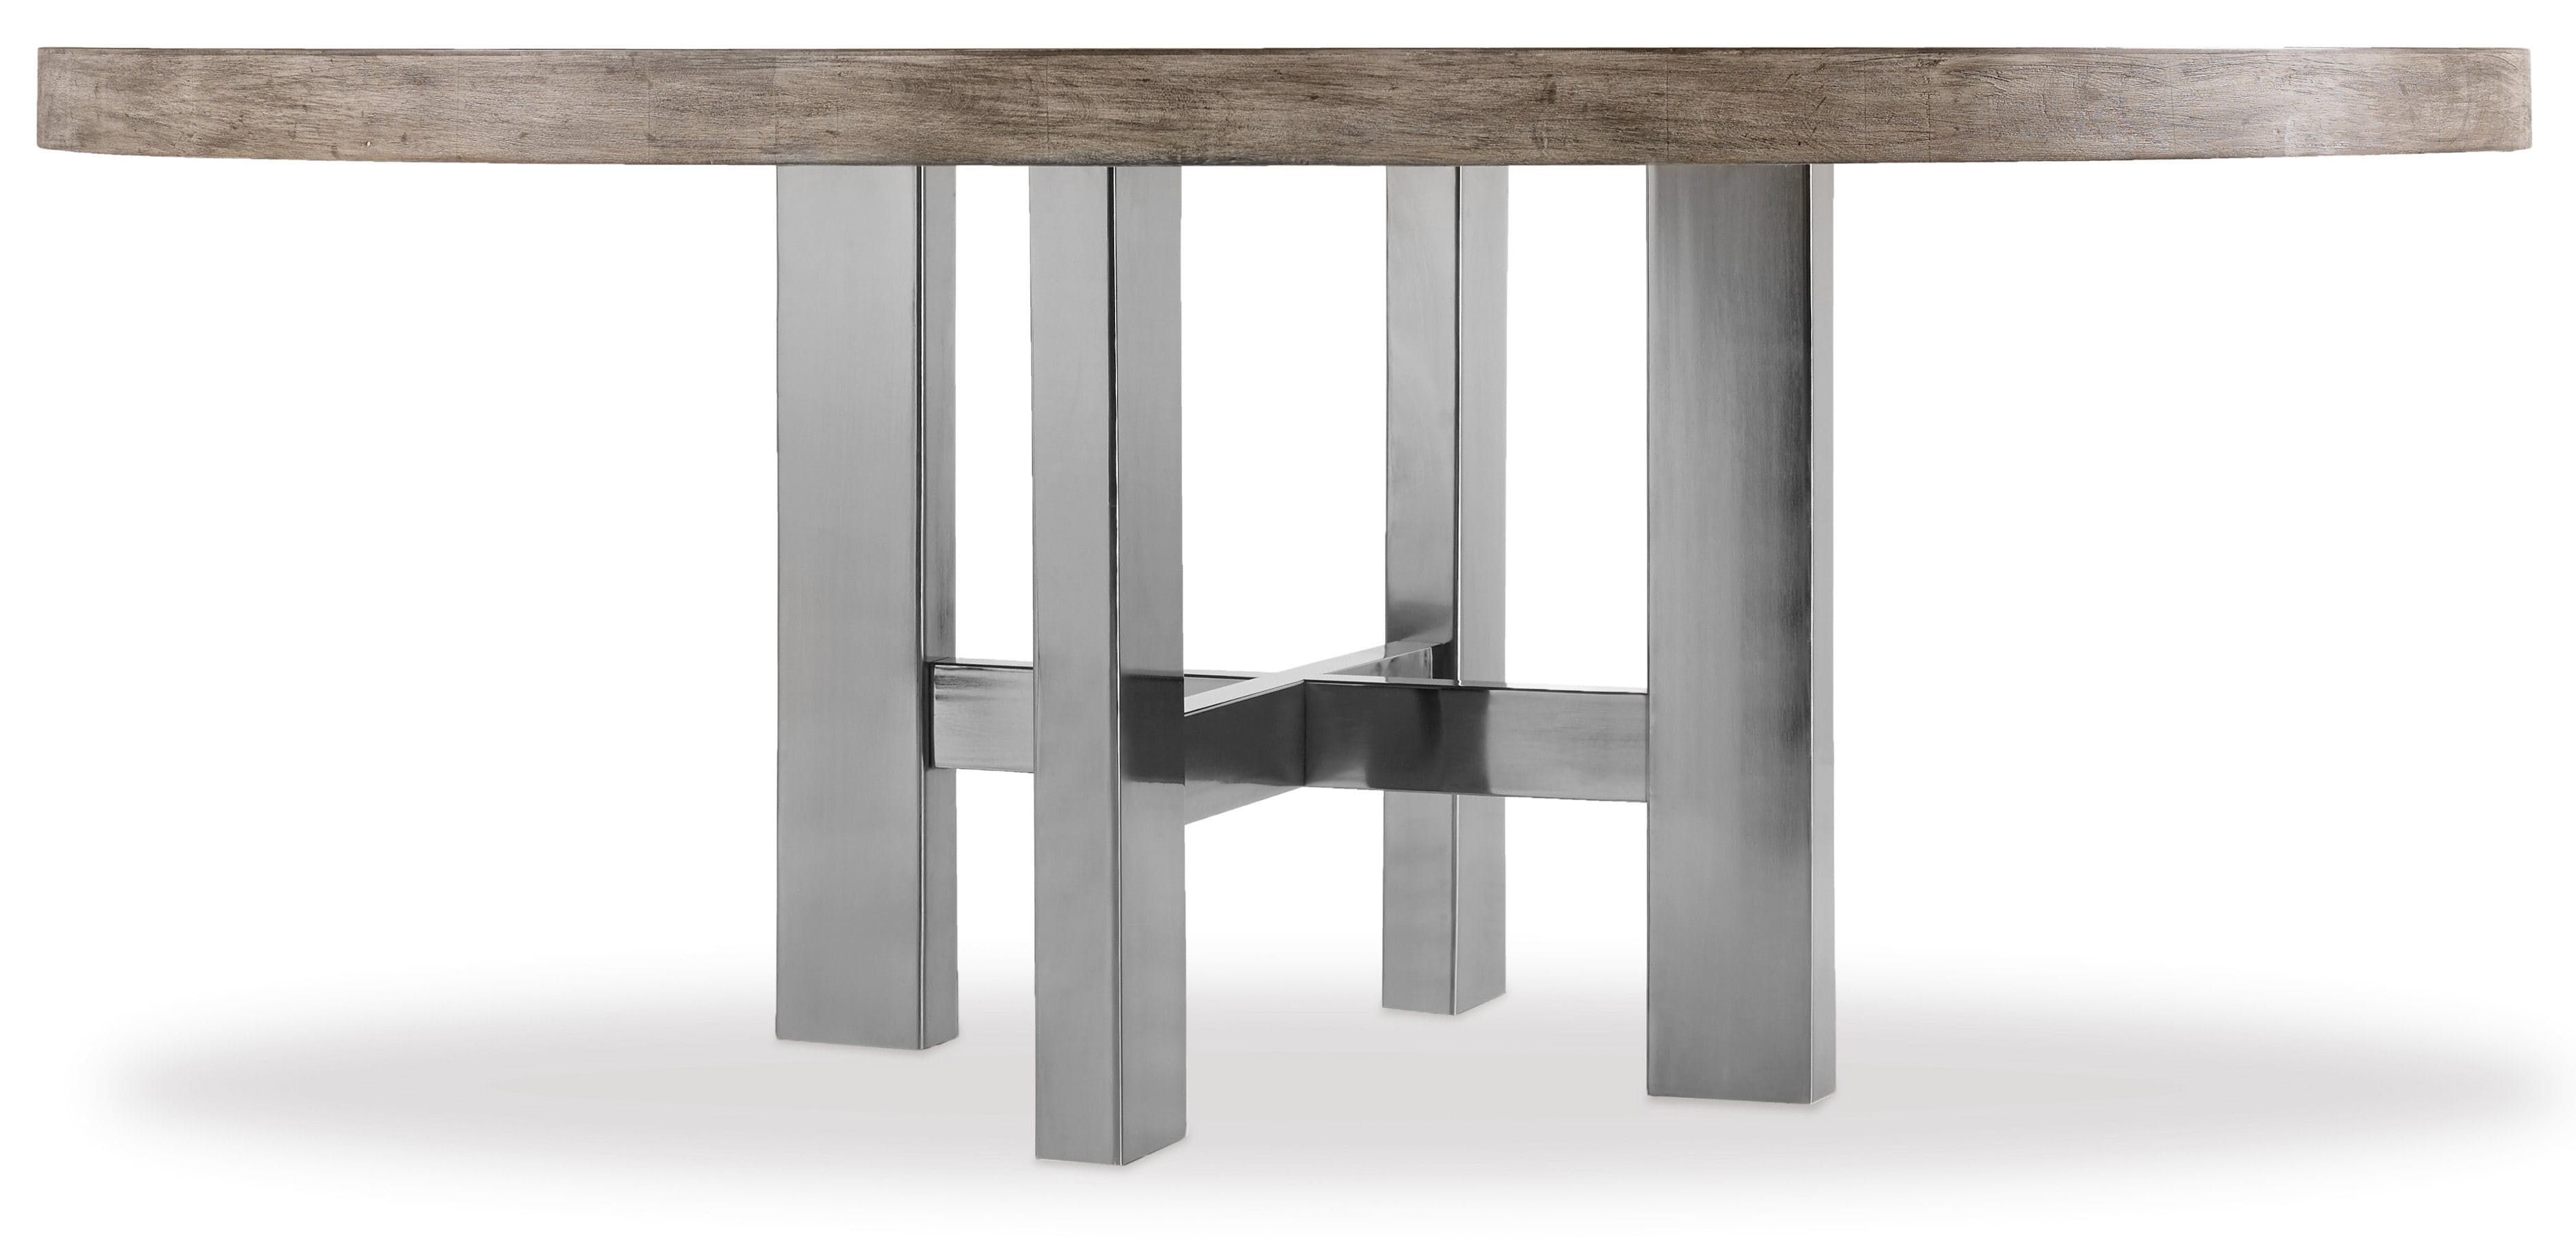 72 Inch And 62 Inch Round Dining Tables Combine The Mountain